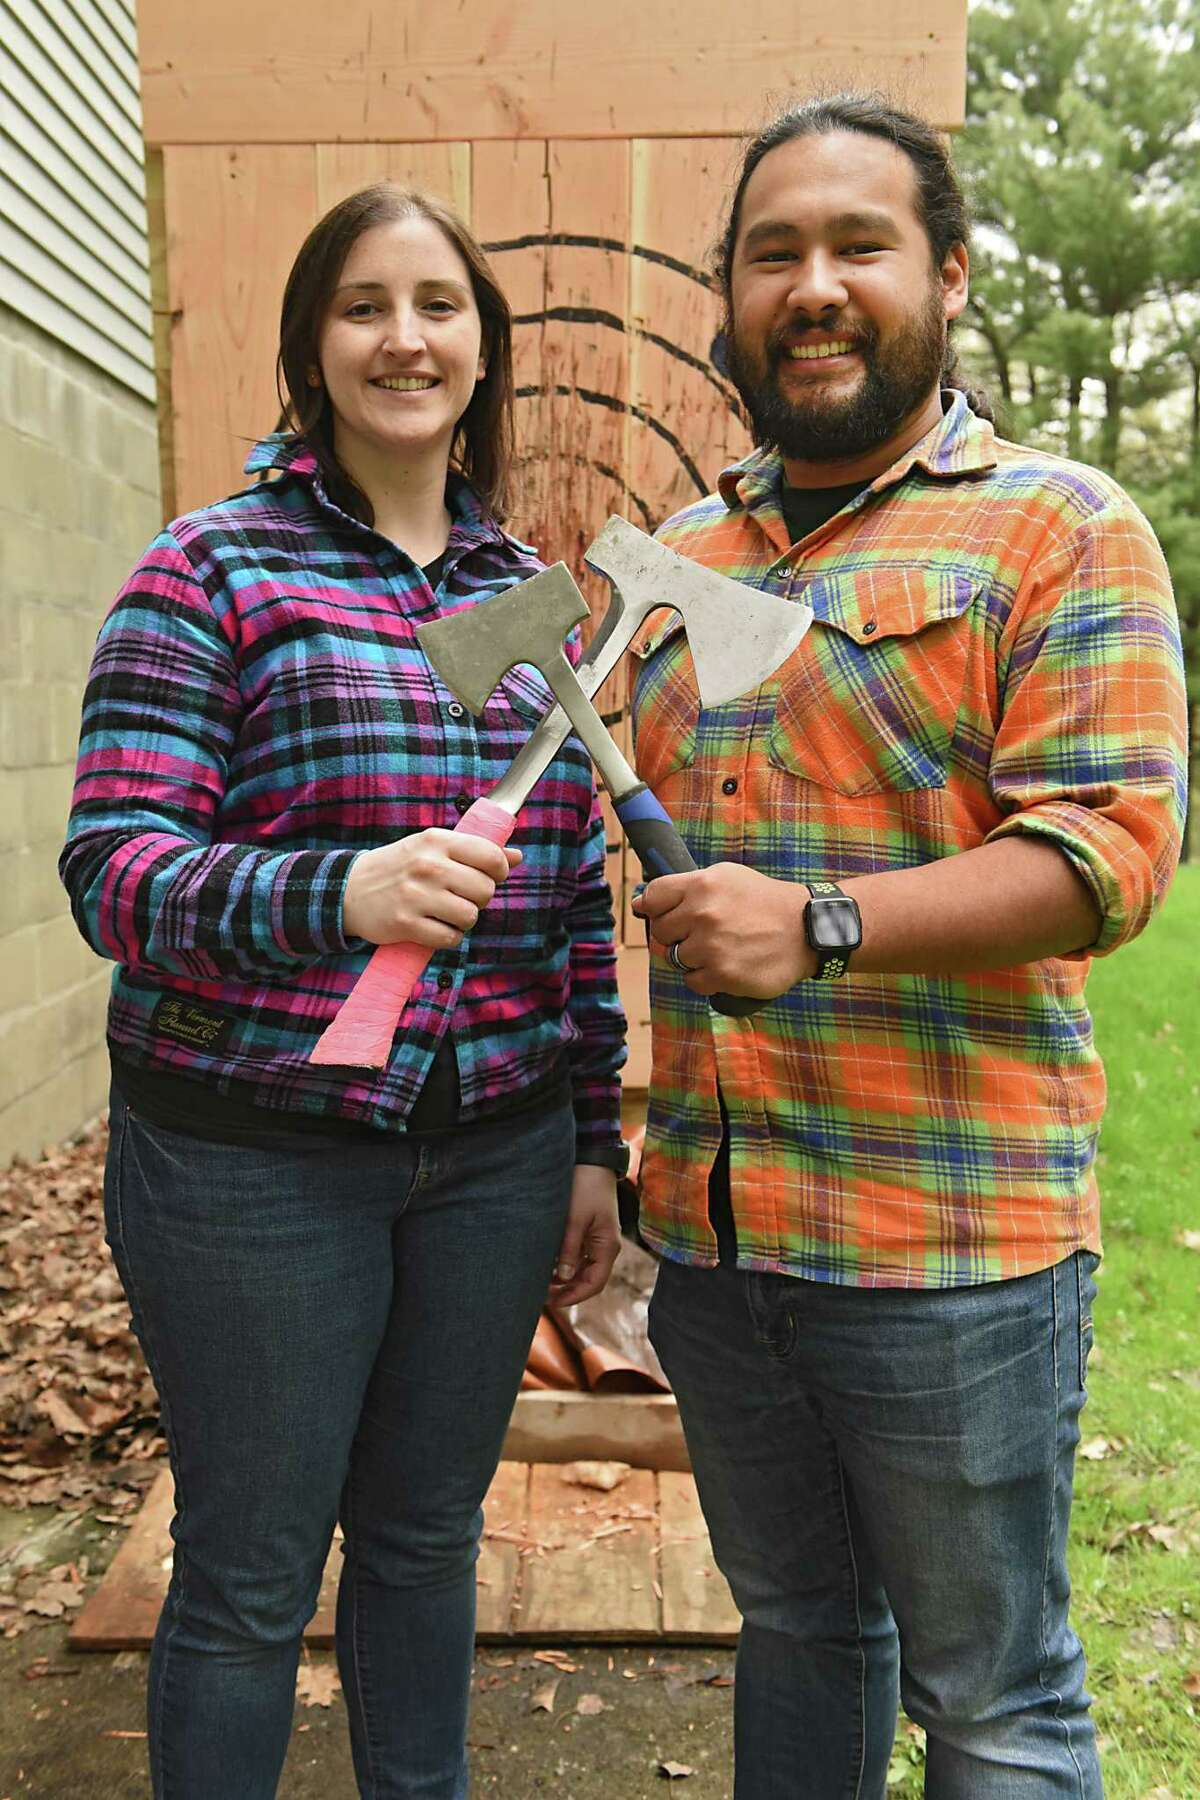 Kristyn Muller and Mark Mirasol, the founders of Lazy Axe, hold axes in front of a target in the back of their home on Friday, May 3, 2019 in Rensselaer, N.Y. The couple hopes to open their business, which is on Central Ave. in Colonie, in a month.(Lori Van Buren/Times Union)